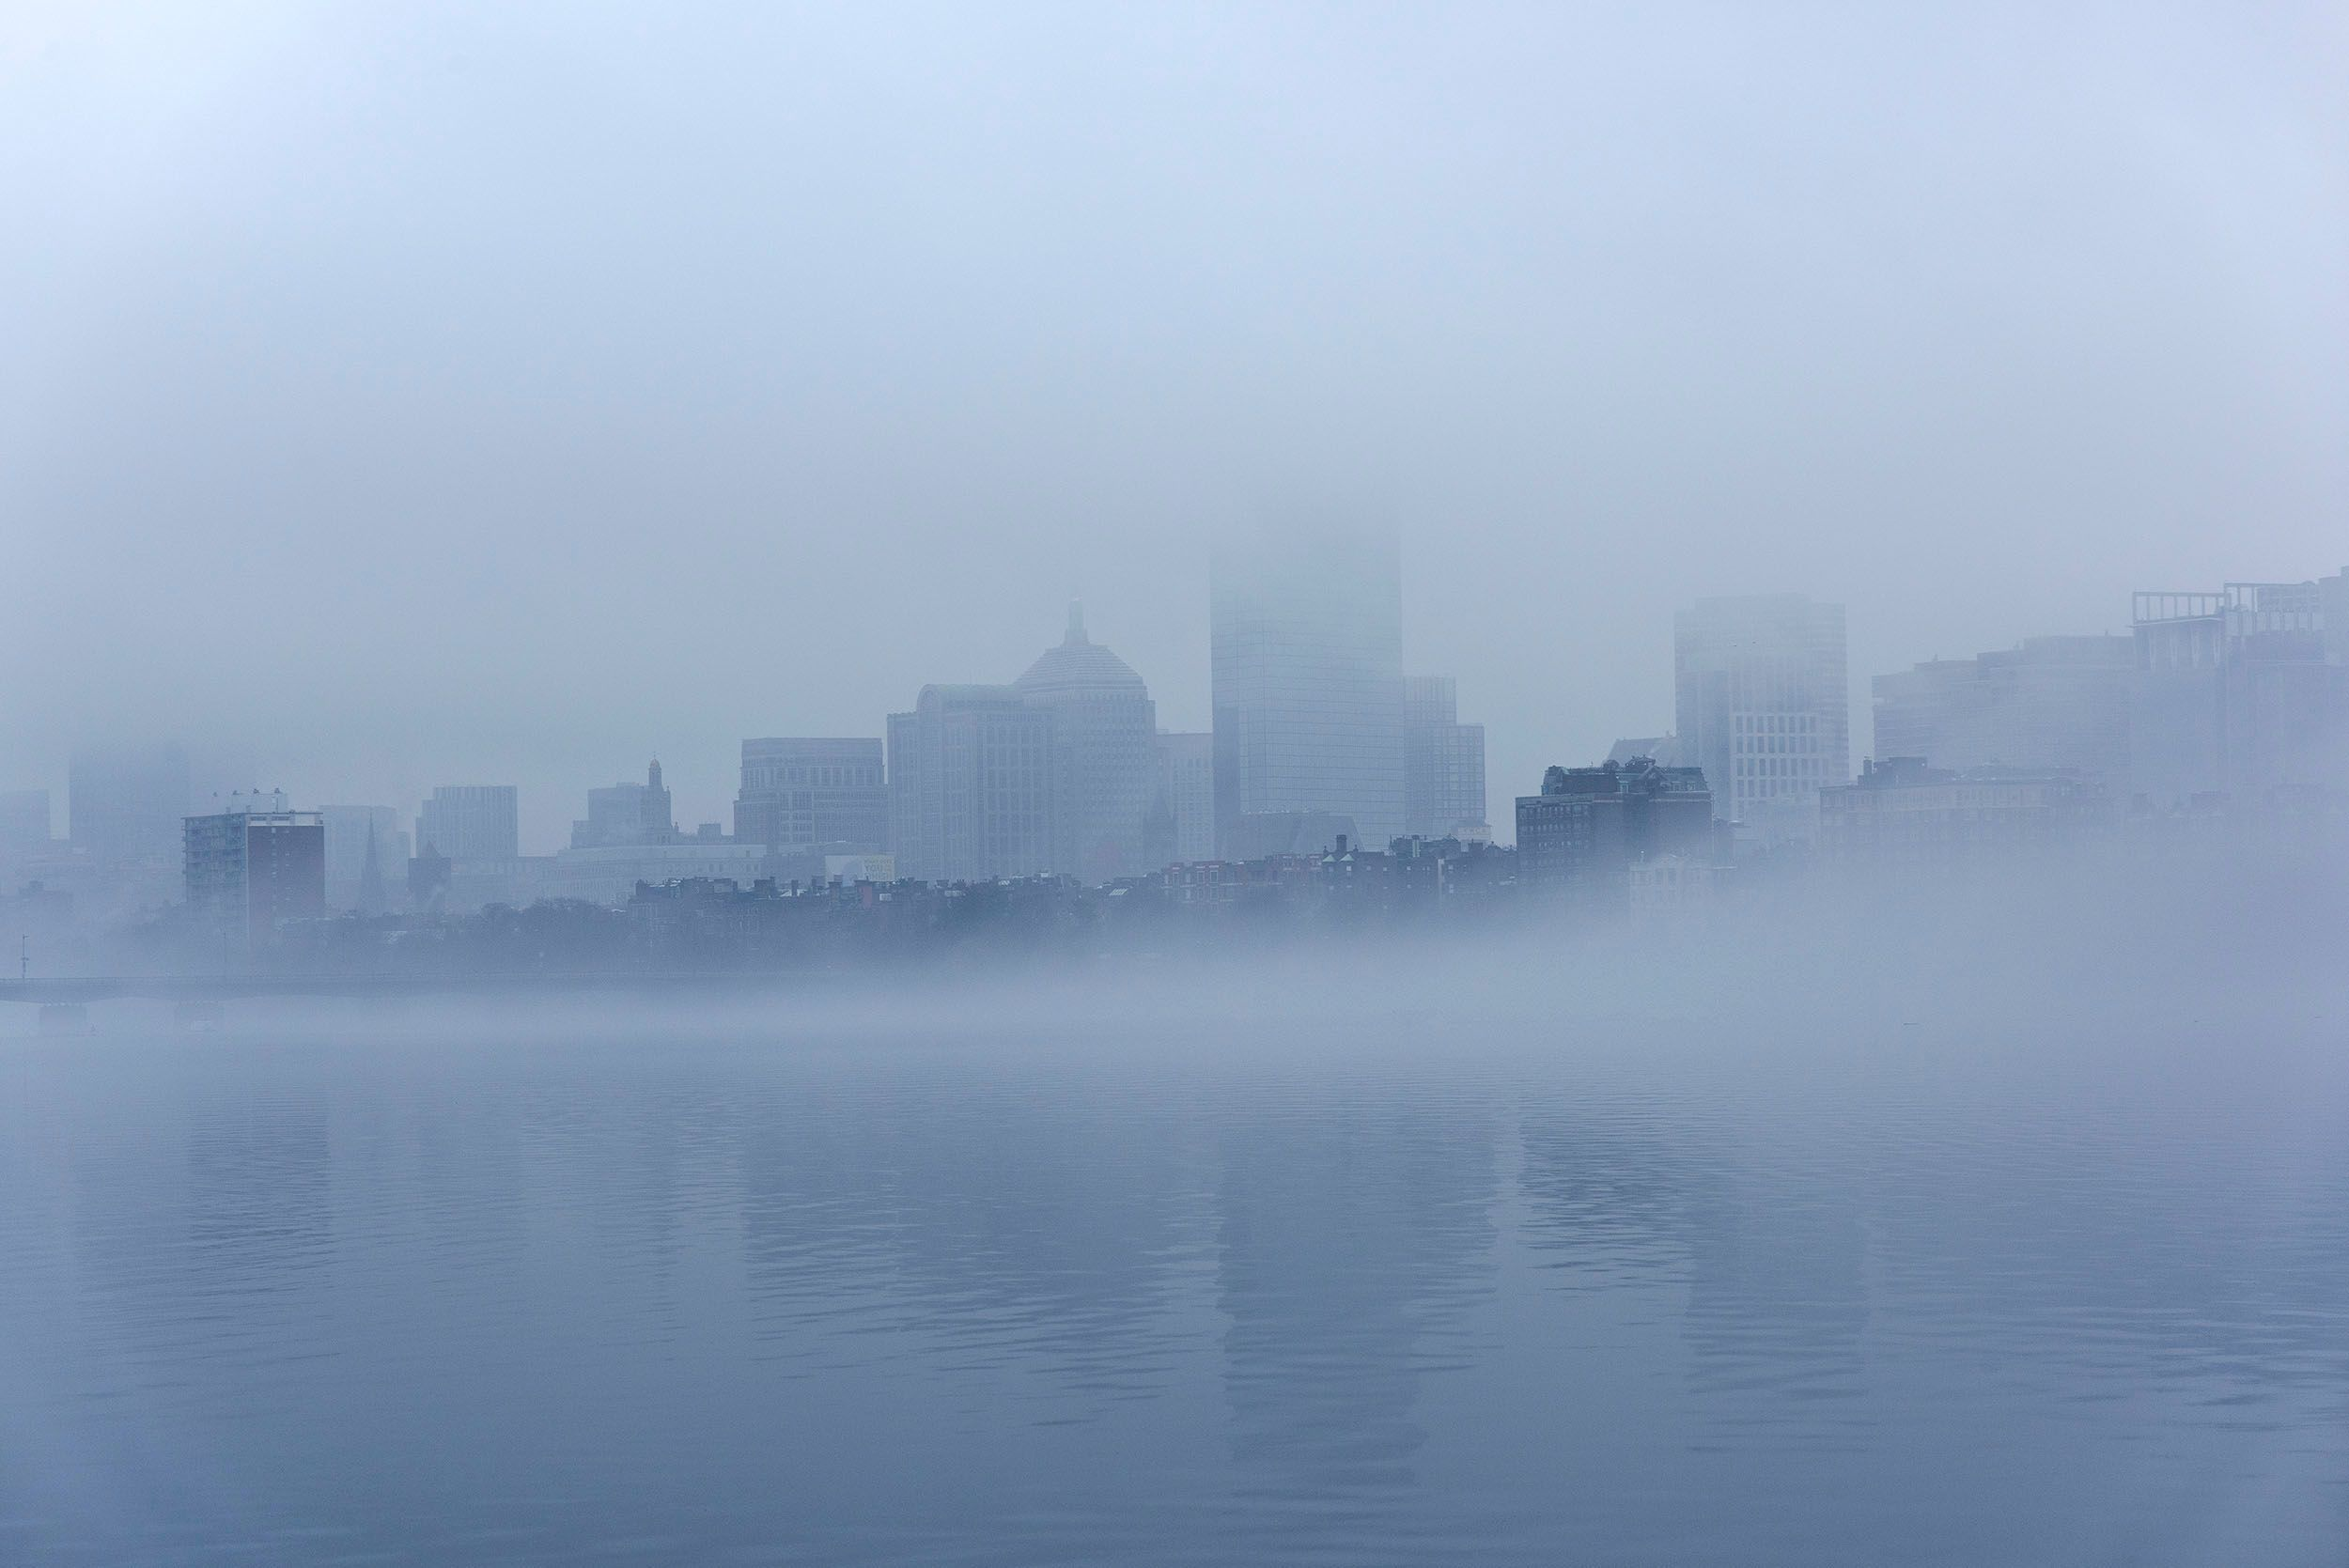 Fog envelopes Boston